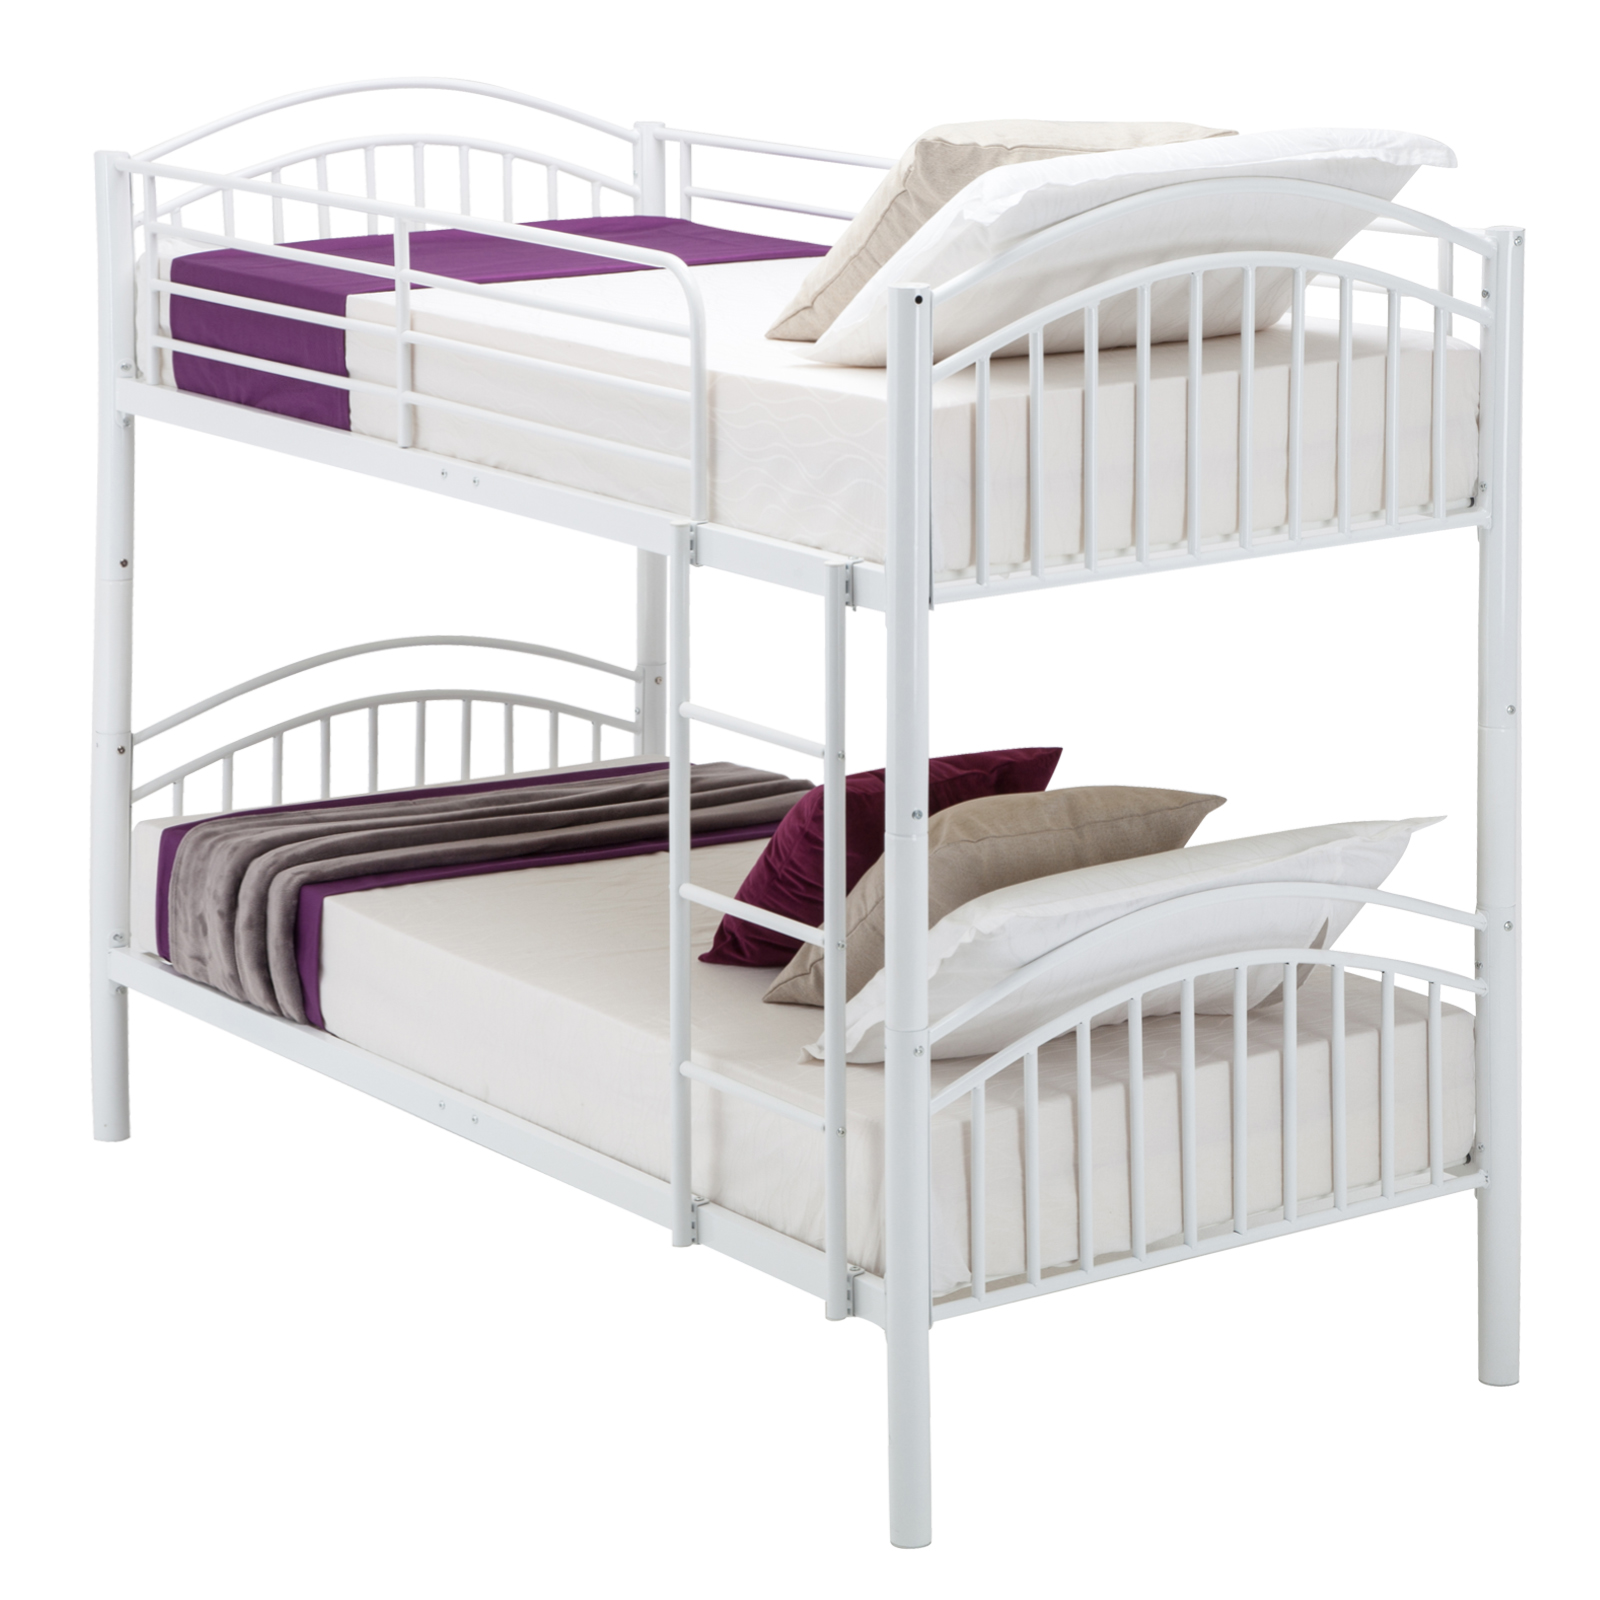 modern 3ft single white metal bunk bed frame 2 person for adult children ebay. Black Bedroom Furniture Sets. Home Design Ideas